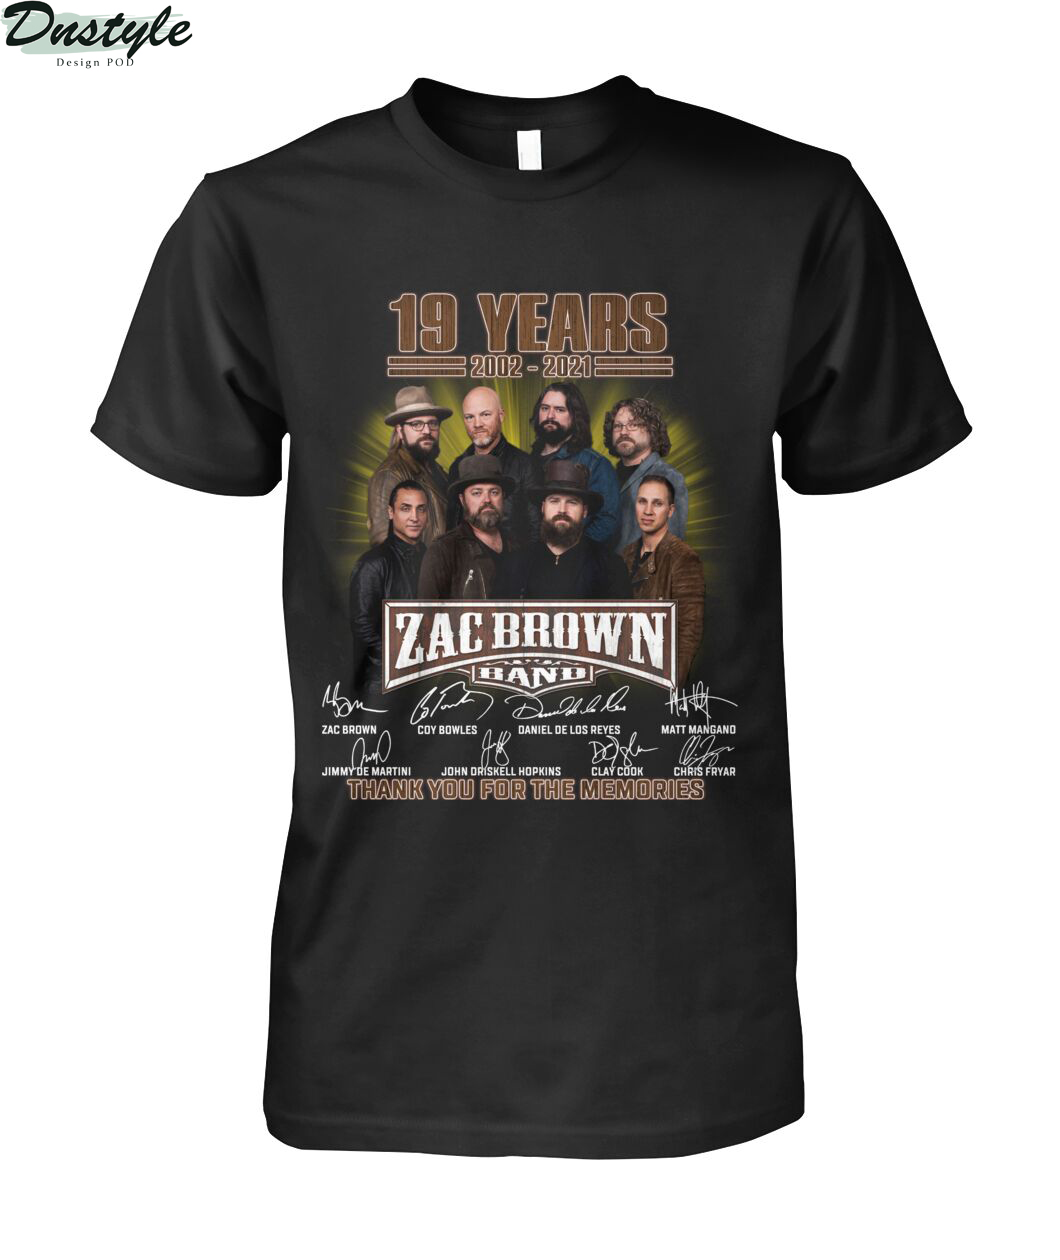 Zac Brown band 19 years 2002 2021 signature thank you for the memories shirt